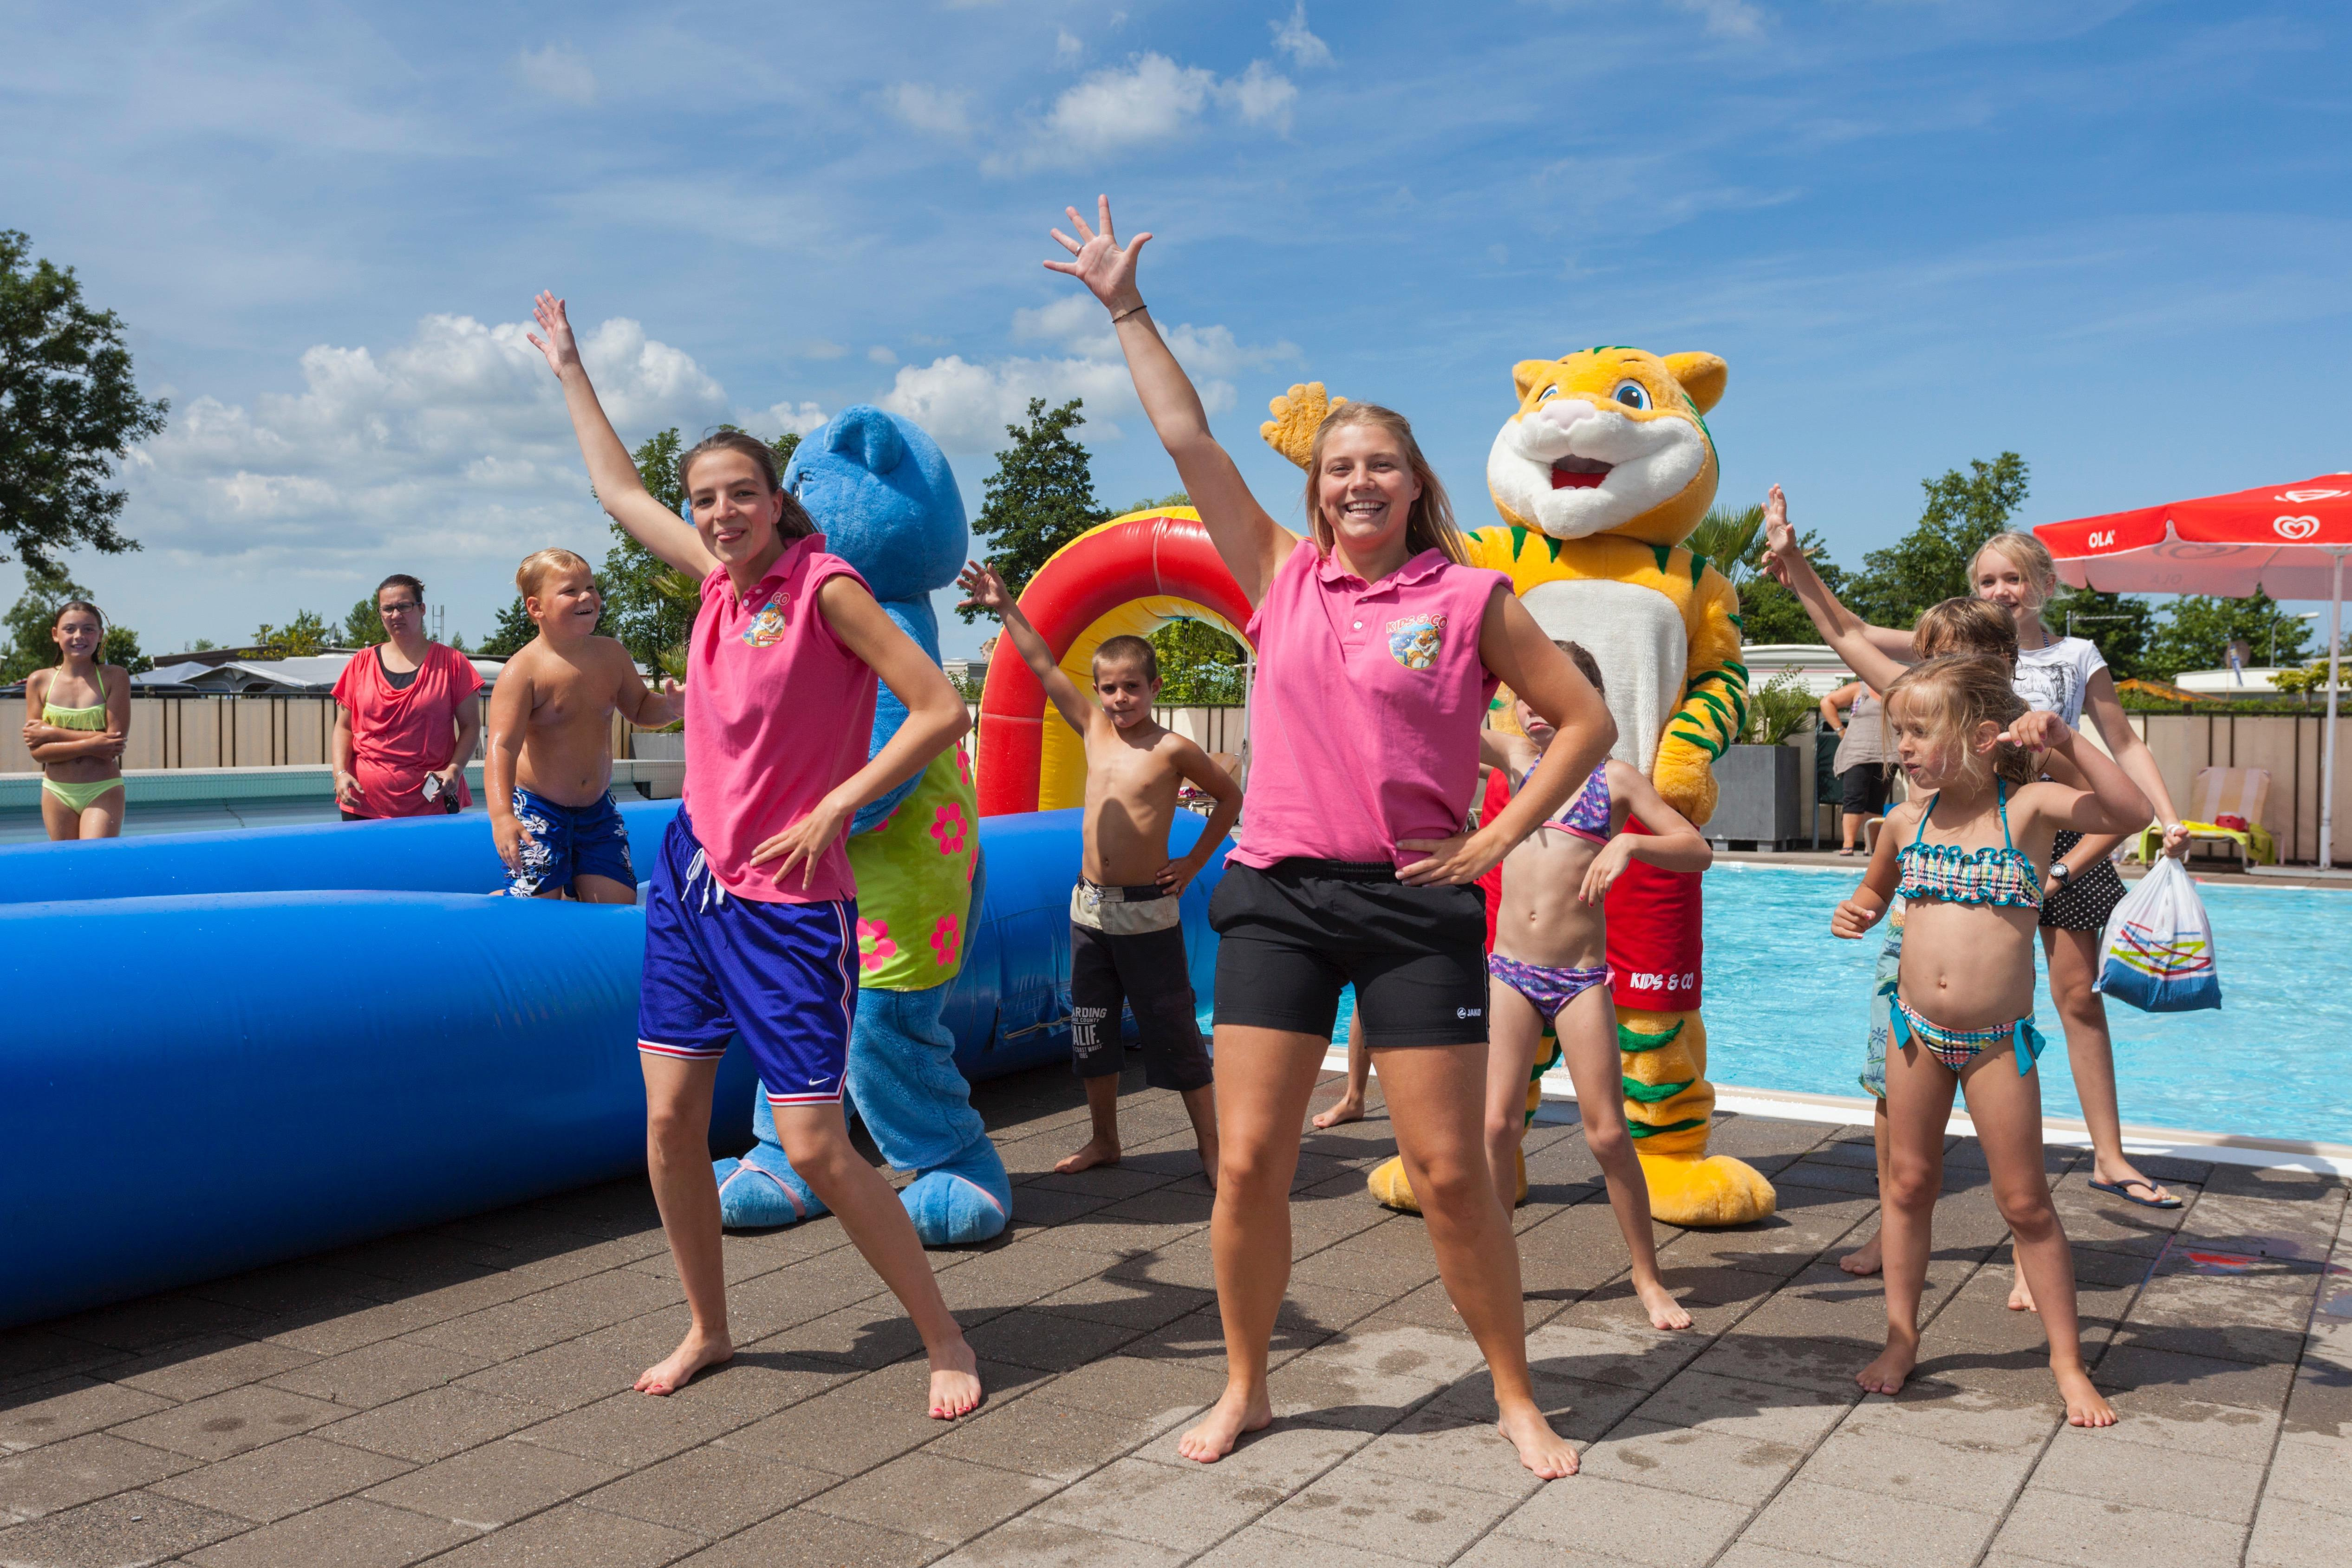 Entertainment organised Familiecamping De Molenhoek - Kamperland